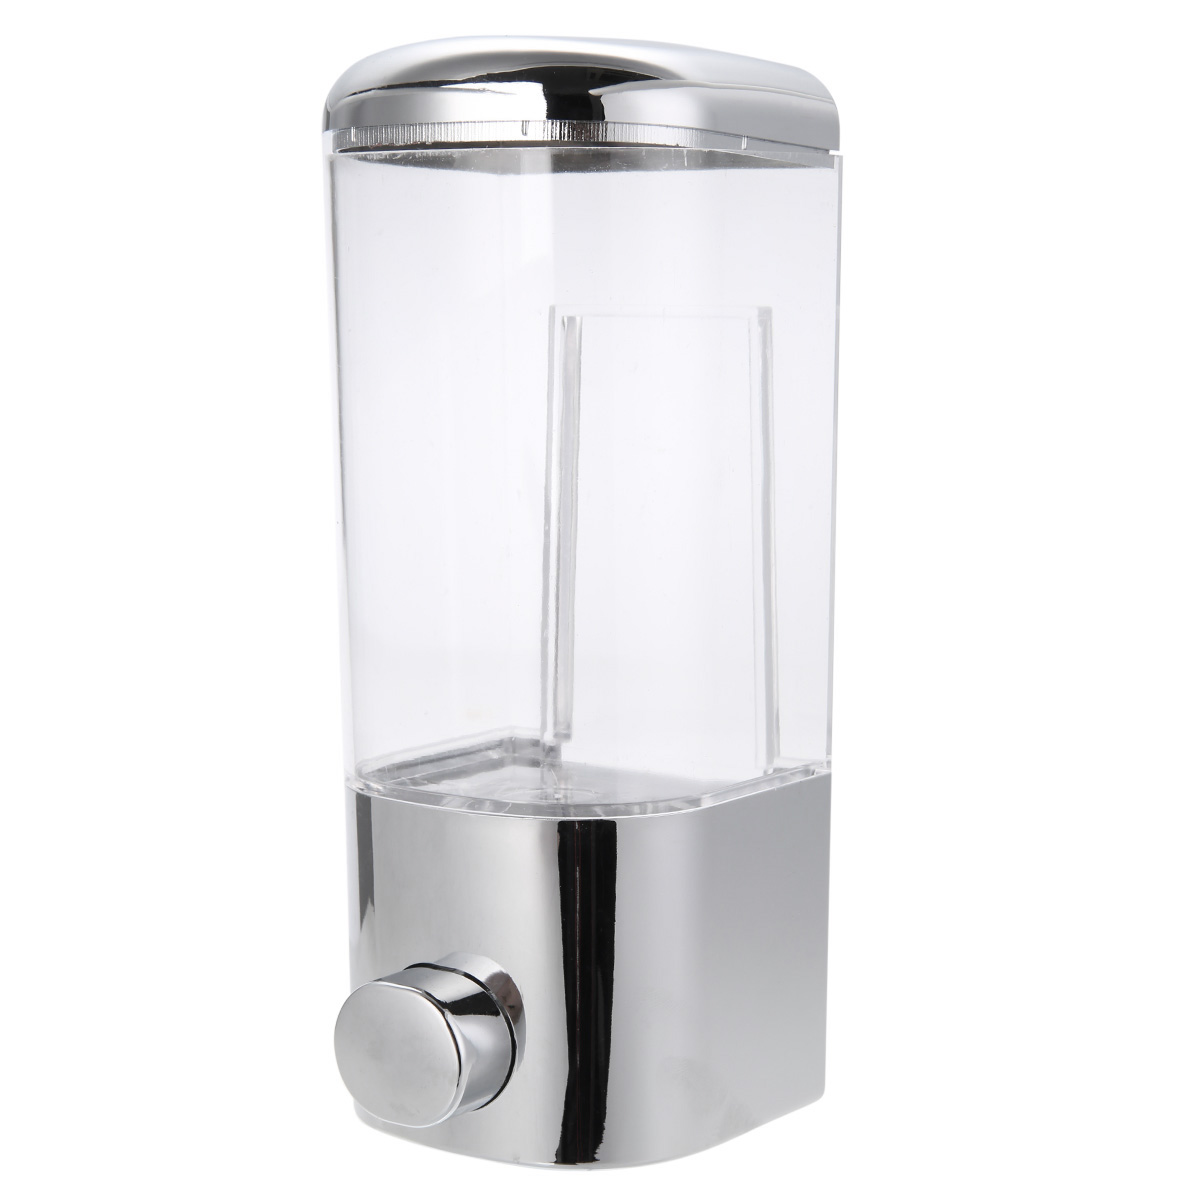 Bathroom Shower Dispensers Us 8 28 40 Off Mayitr 500ml Chrome Wall Mounted Soap Dispenser Bathroom Shower Lotion Holder For Home Washroom Liquid Tool In Liquid Soap Dispensers